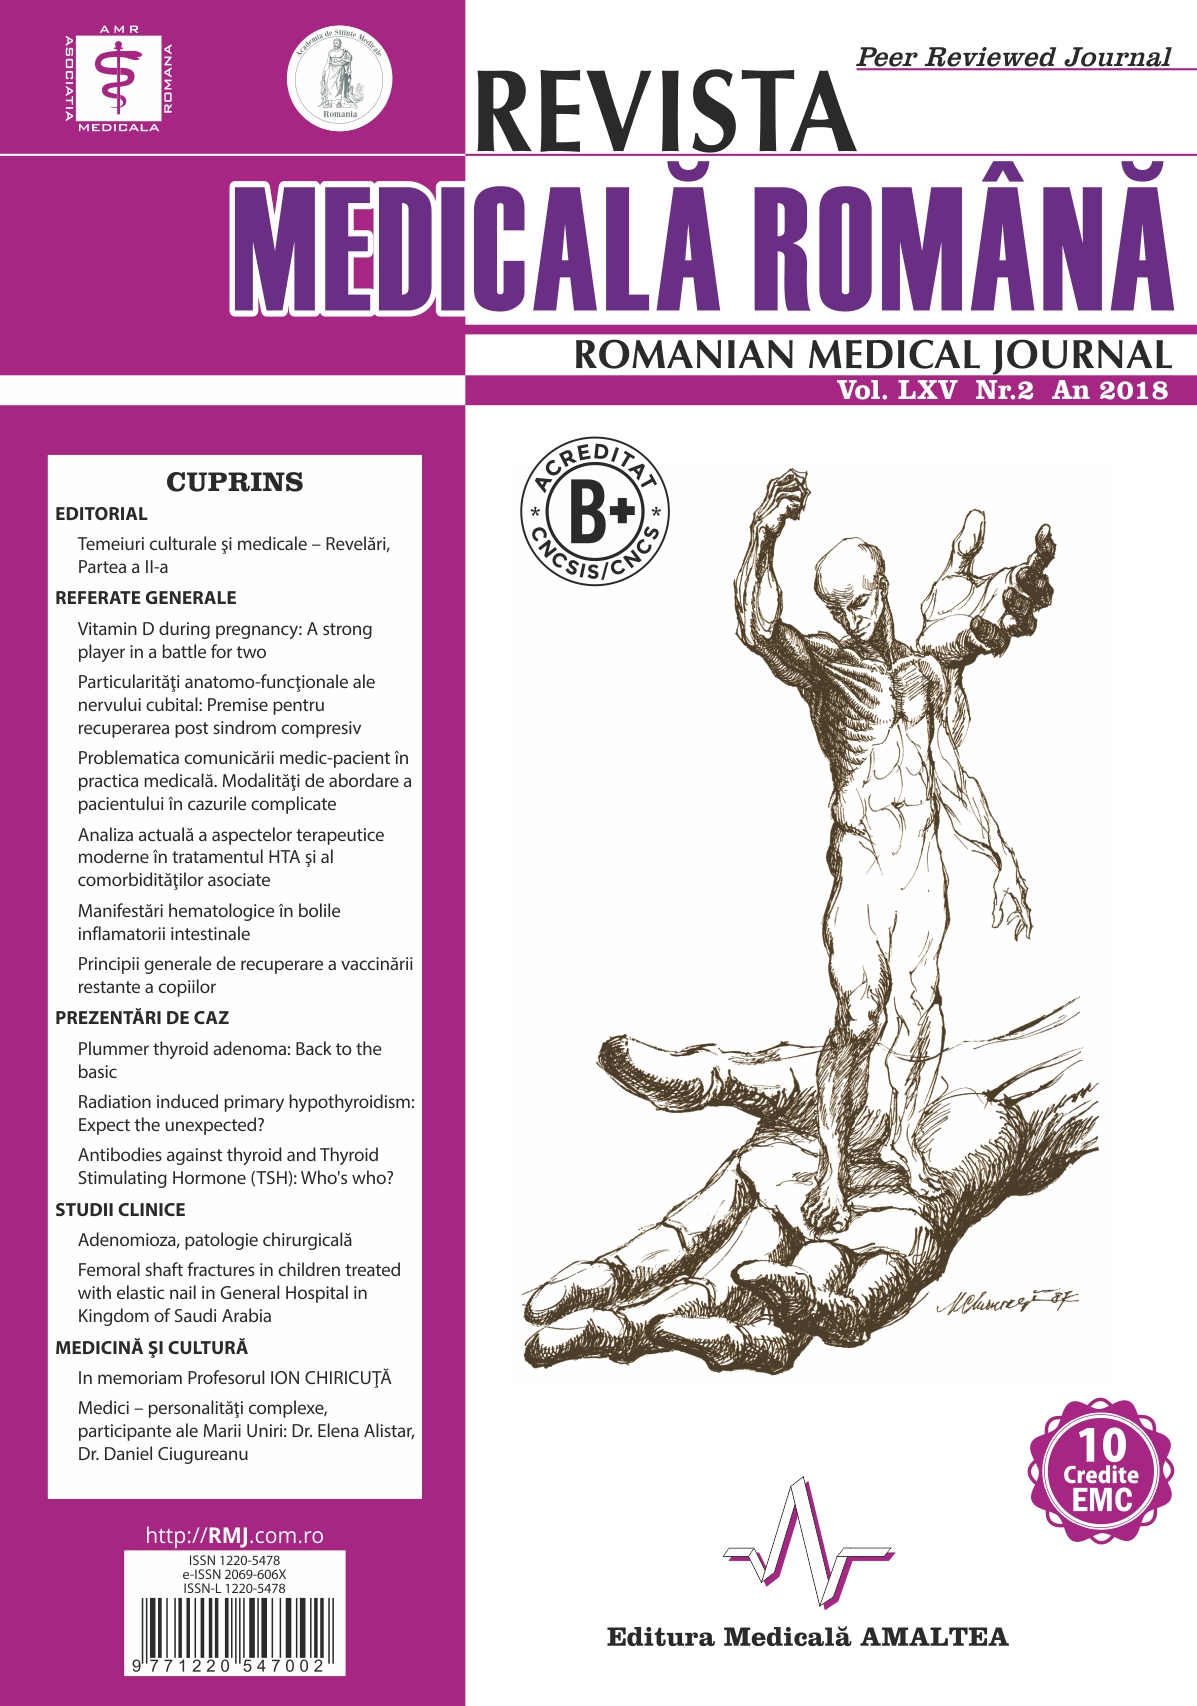 REVISTA MEDICALA ROMANA - Romanian Medical Journal, Vol. LXV, No. 2, Year 2018